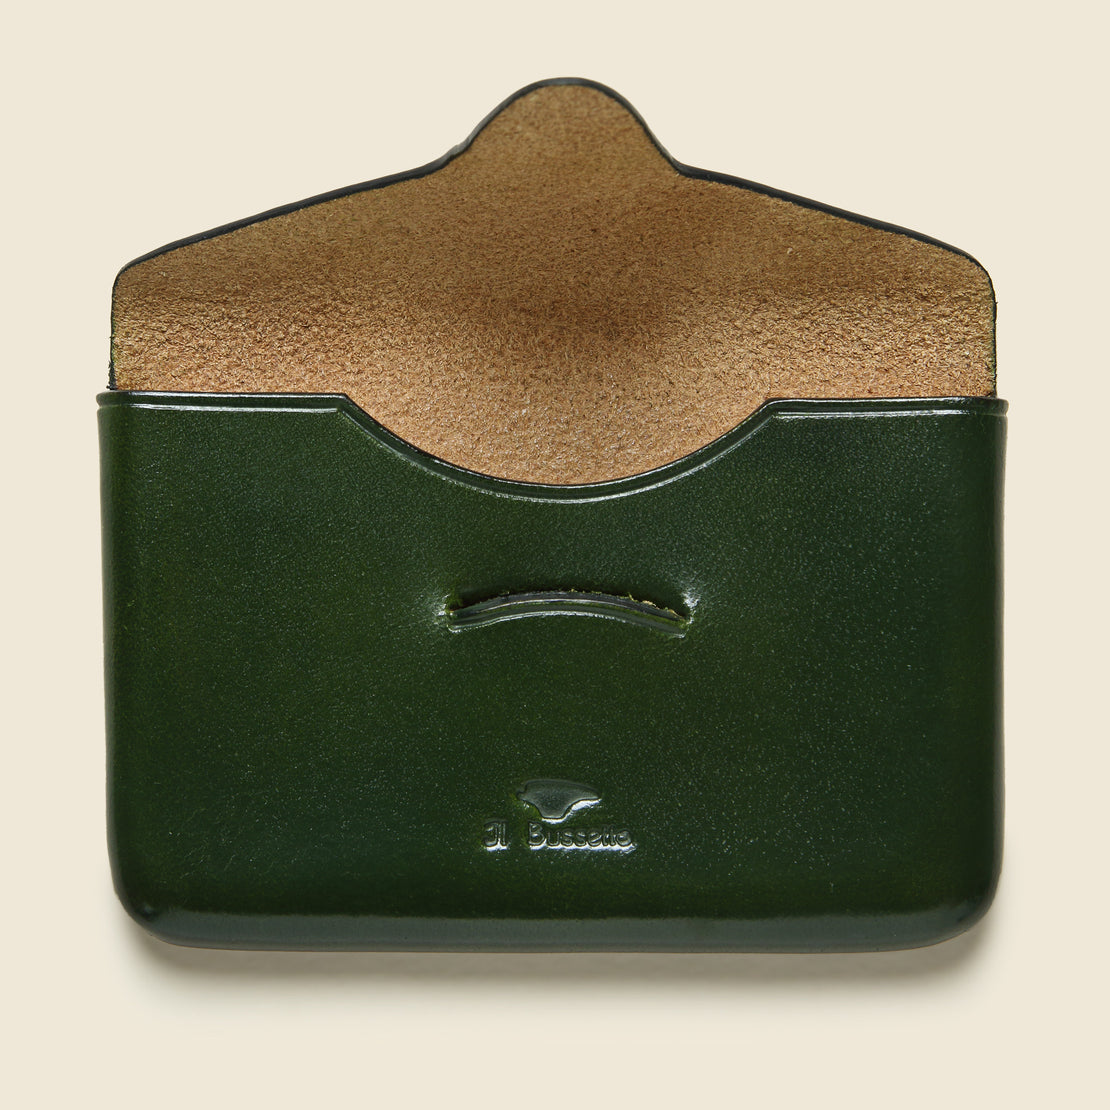 Business Card Holder - Green - Il Bussetto - STAG Provisions - Accessories - Wallets